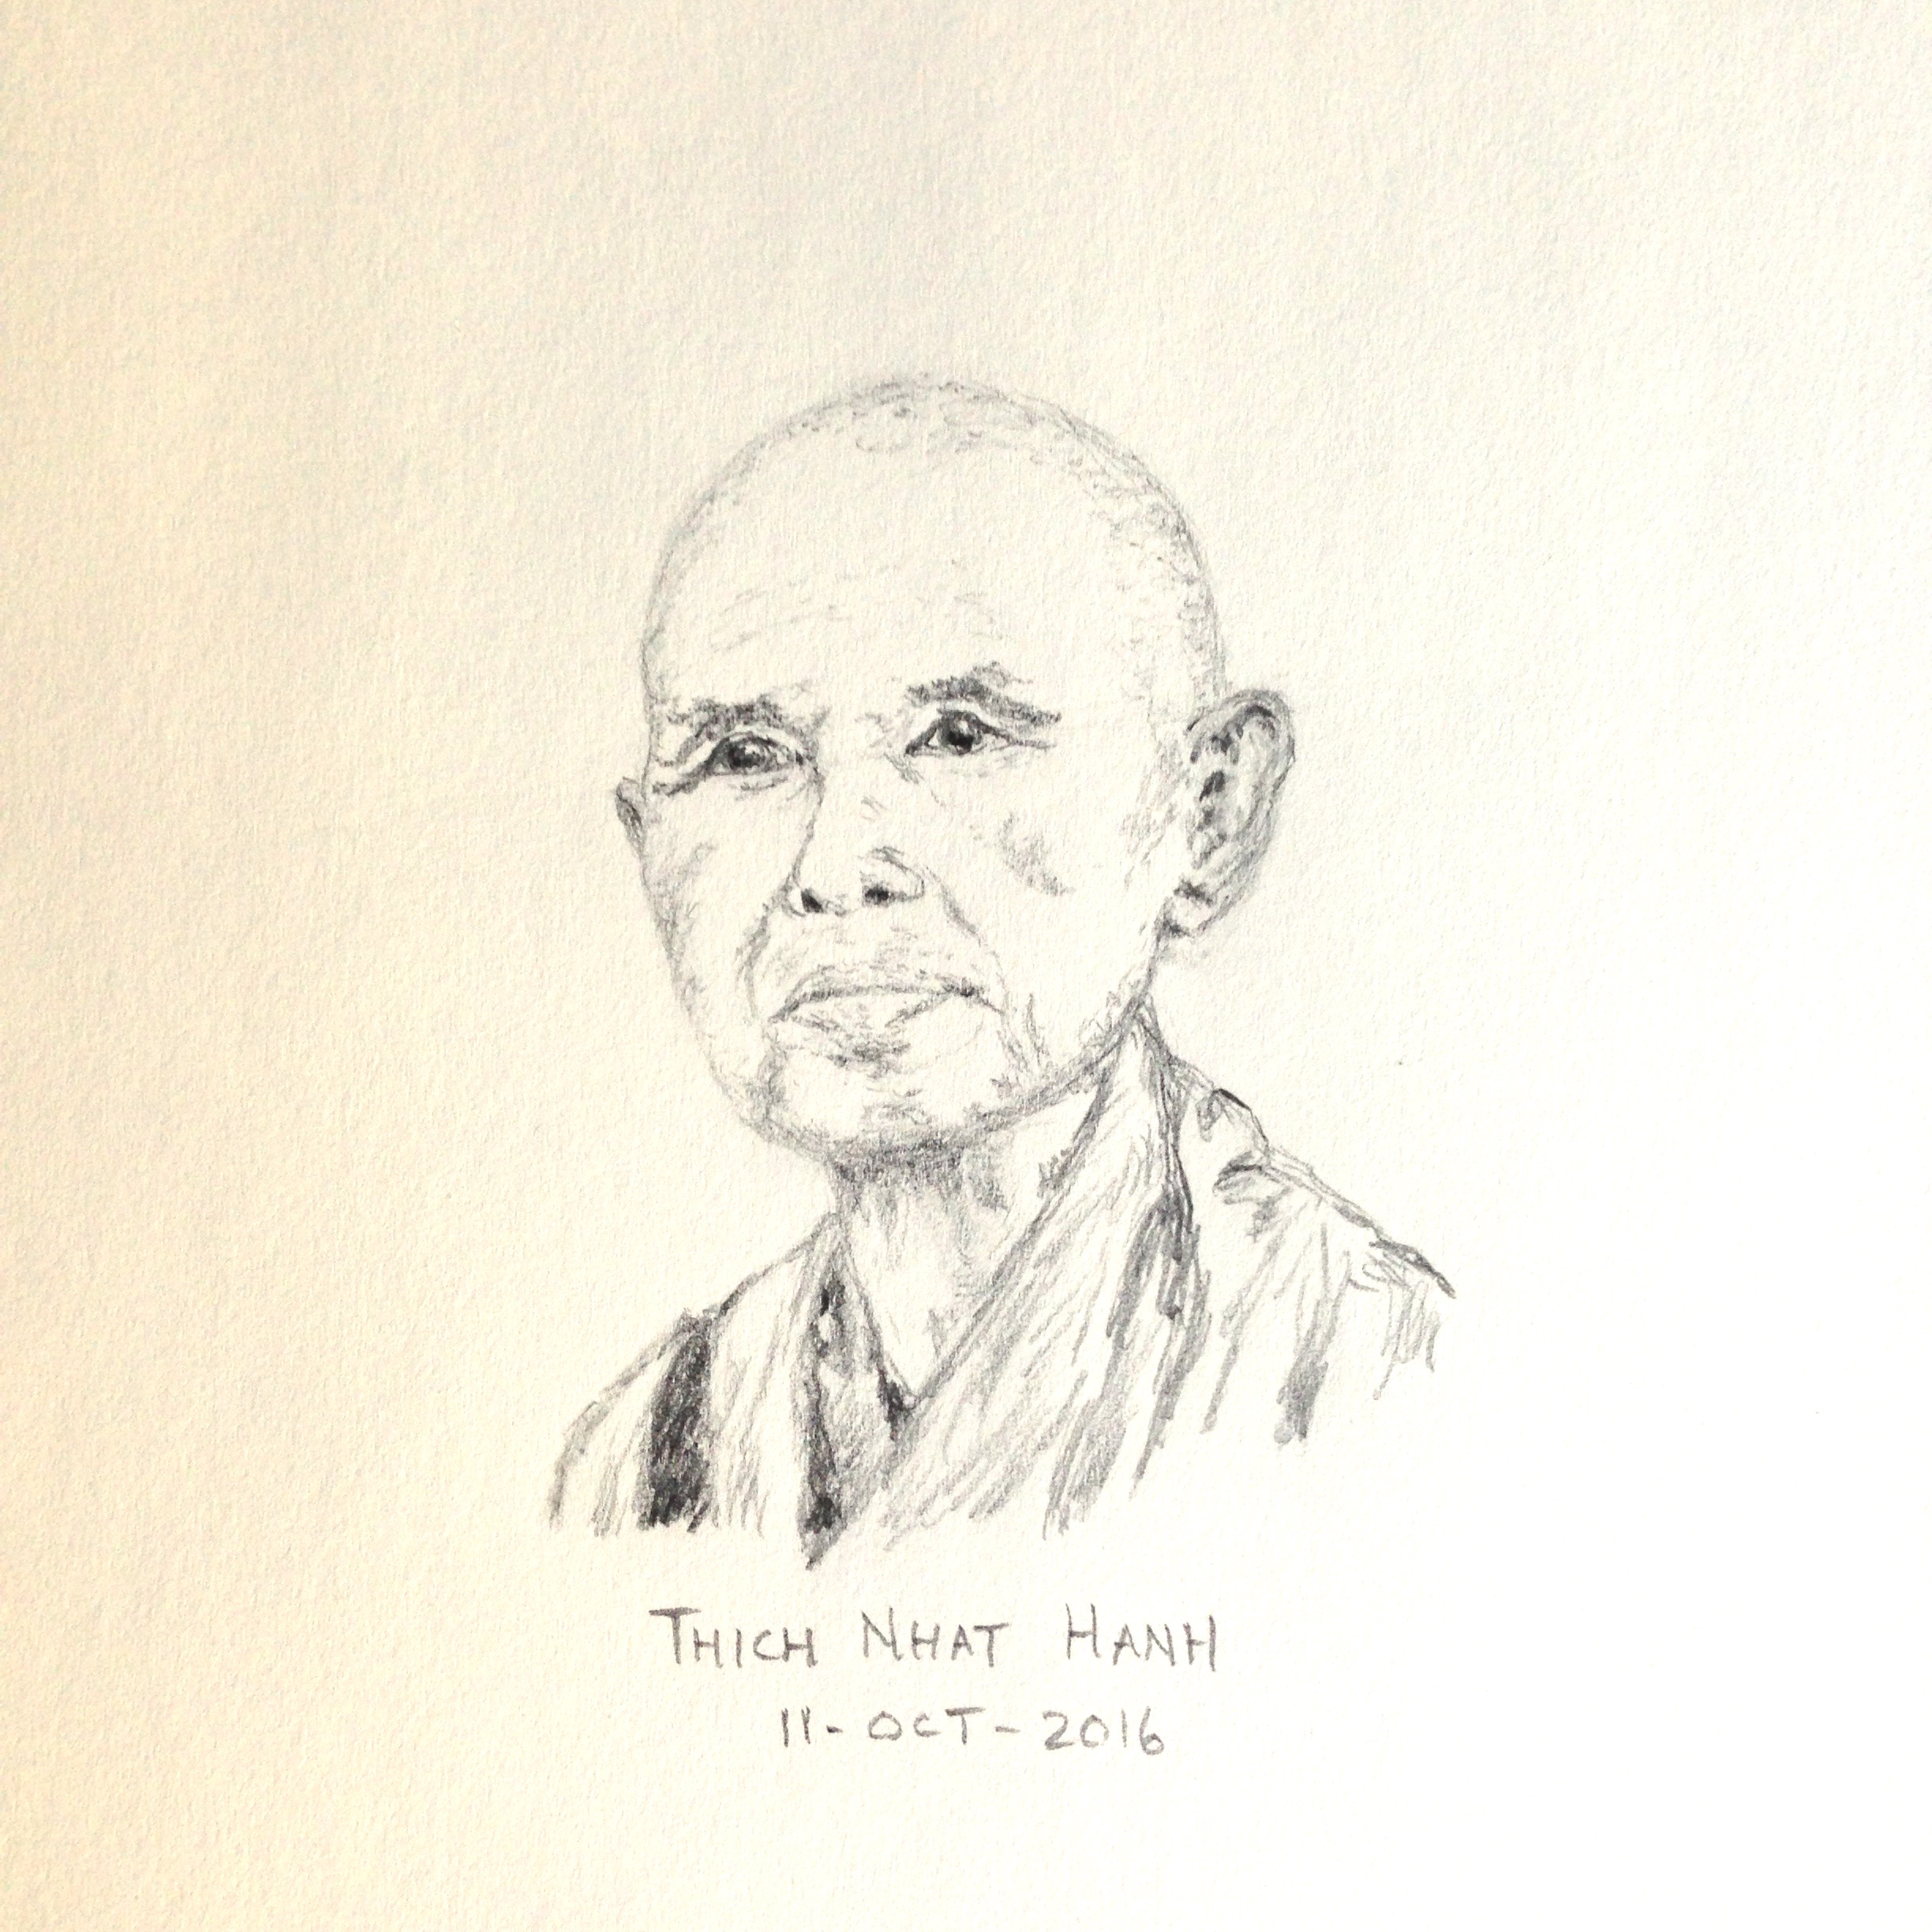 Pencil drawing of Thich Nhat Hanh